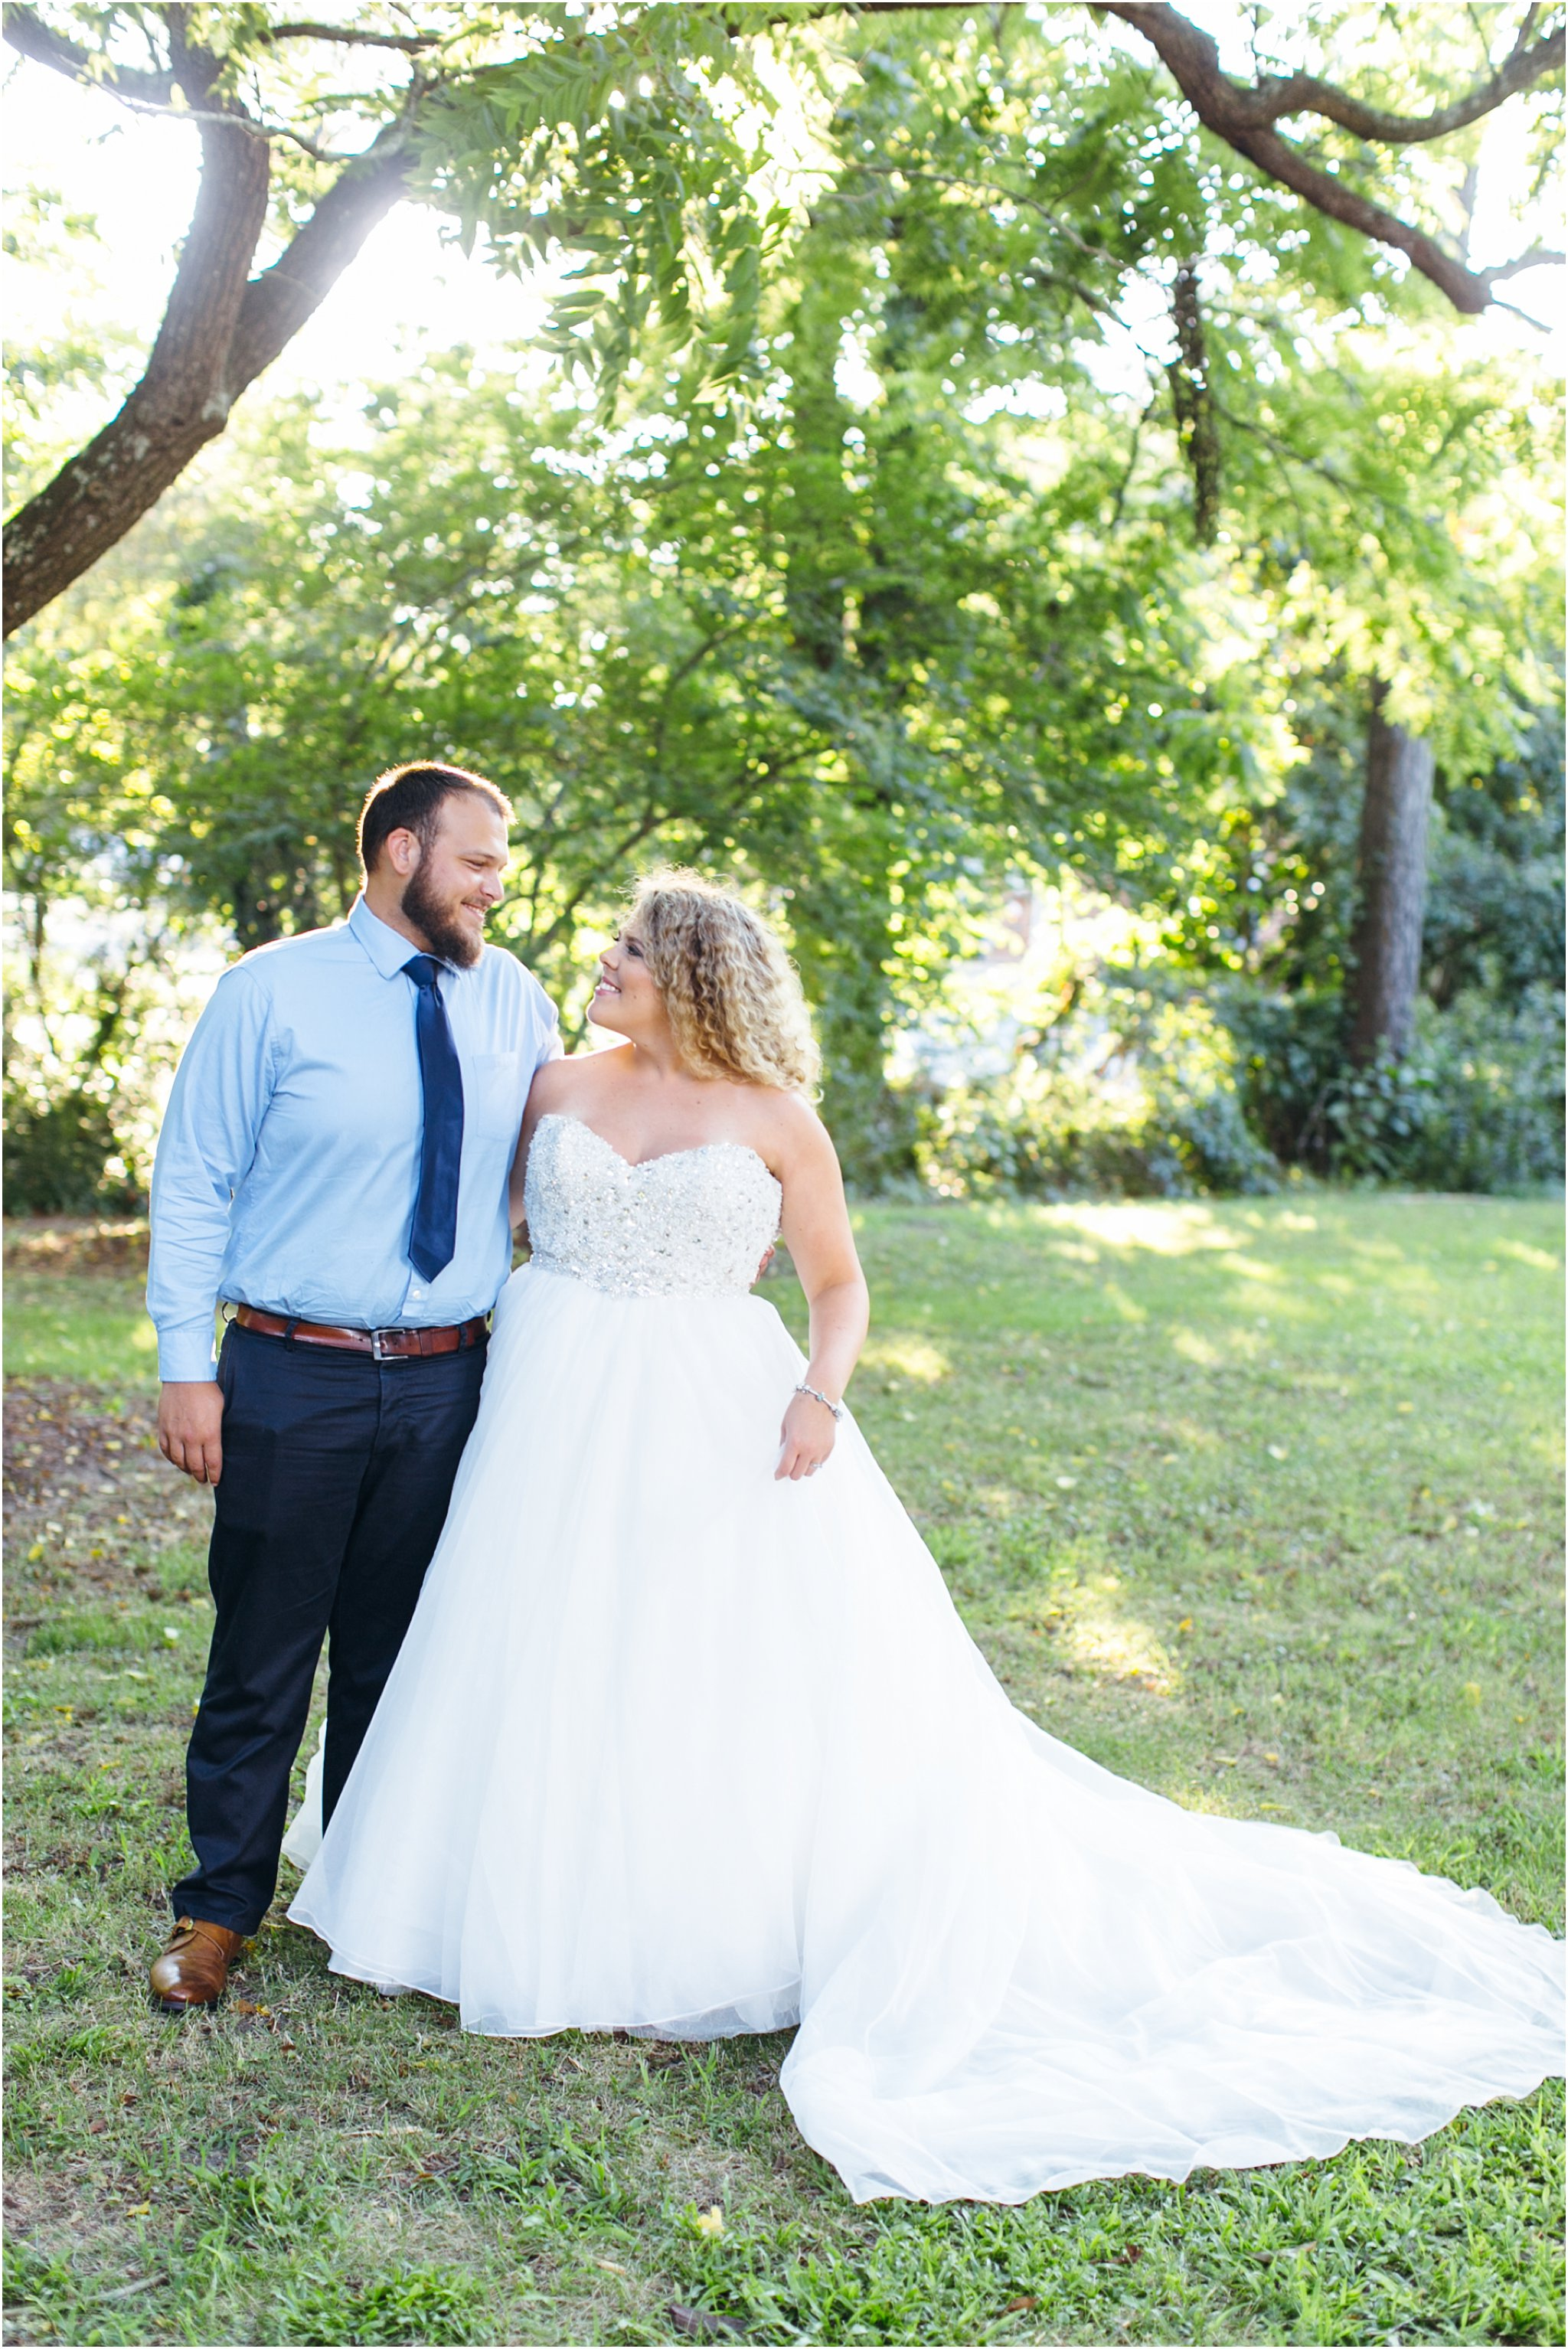 jessica_ryan_photography_virginia_virginia_beach_francis_land_house_portraits_anniversary_portraits_bride_and_groom_beloved_historical_home_wedding_2688